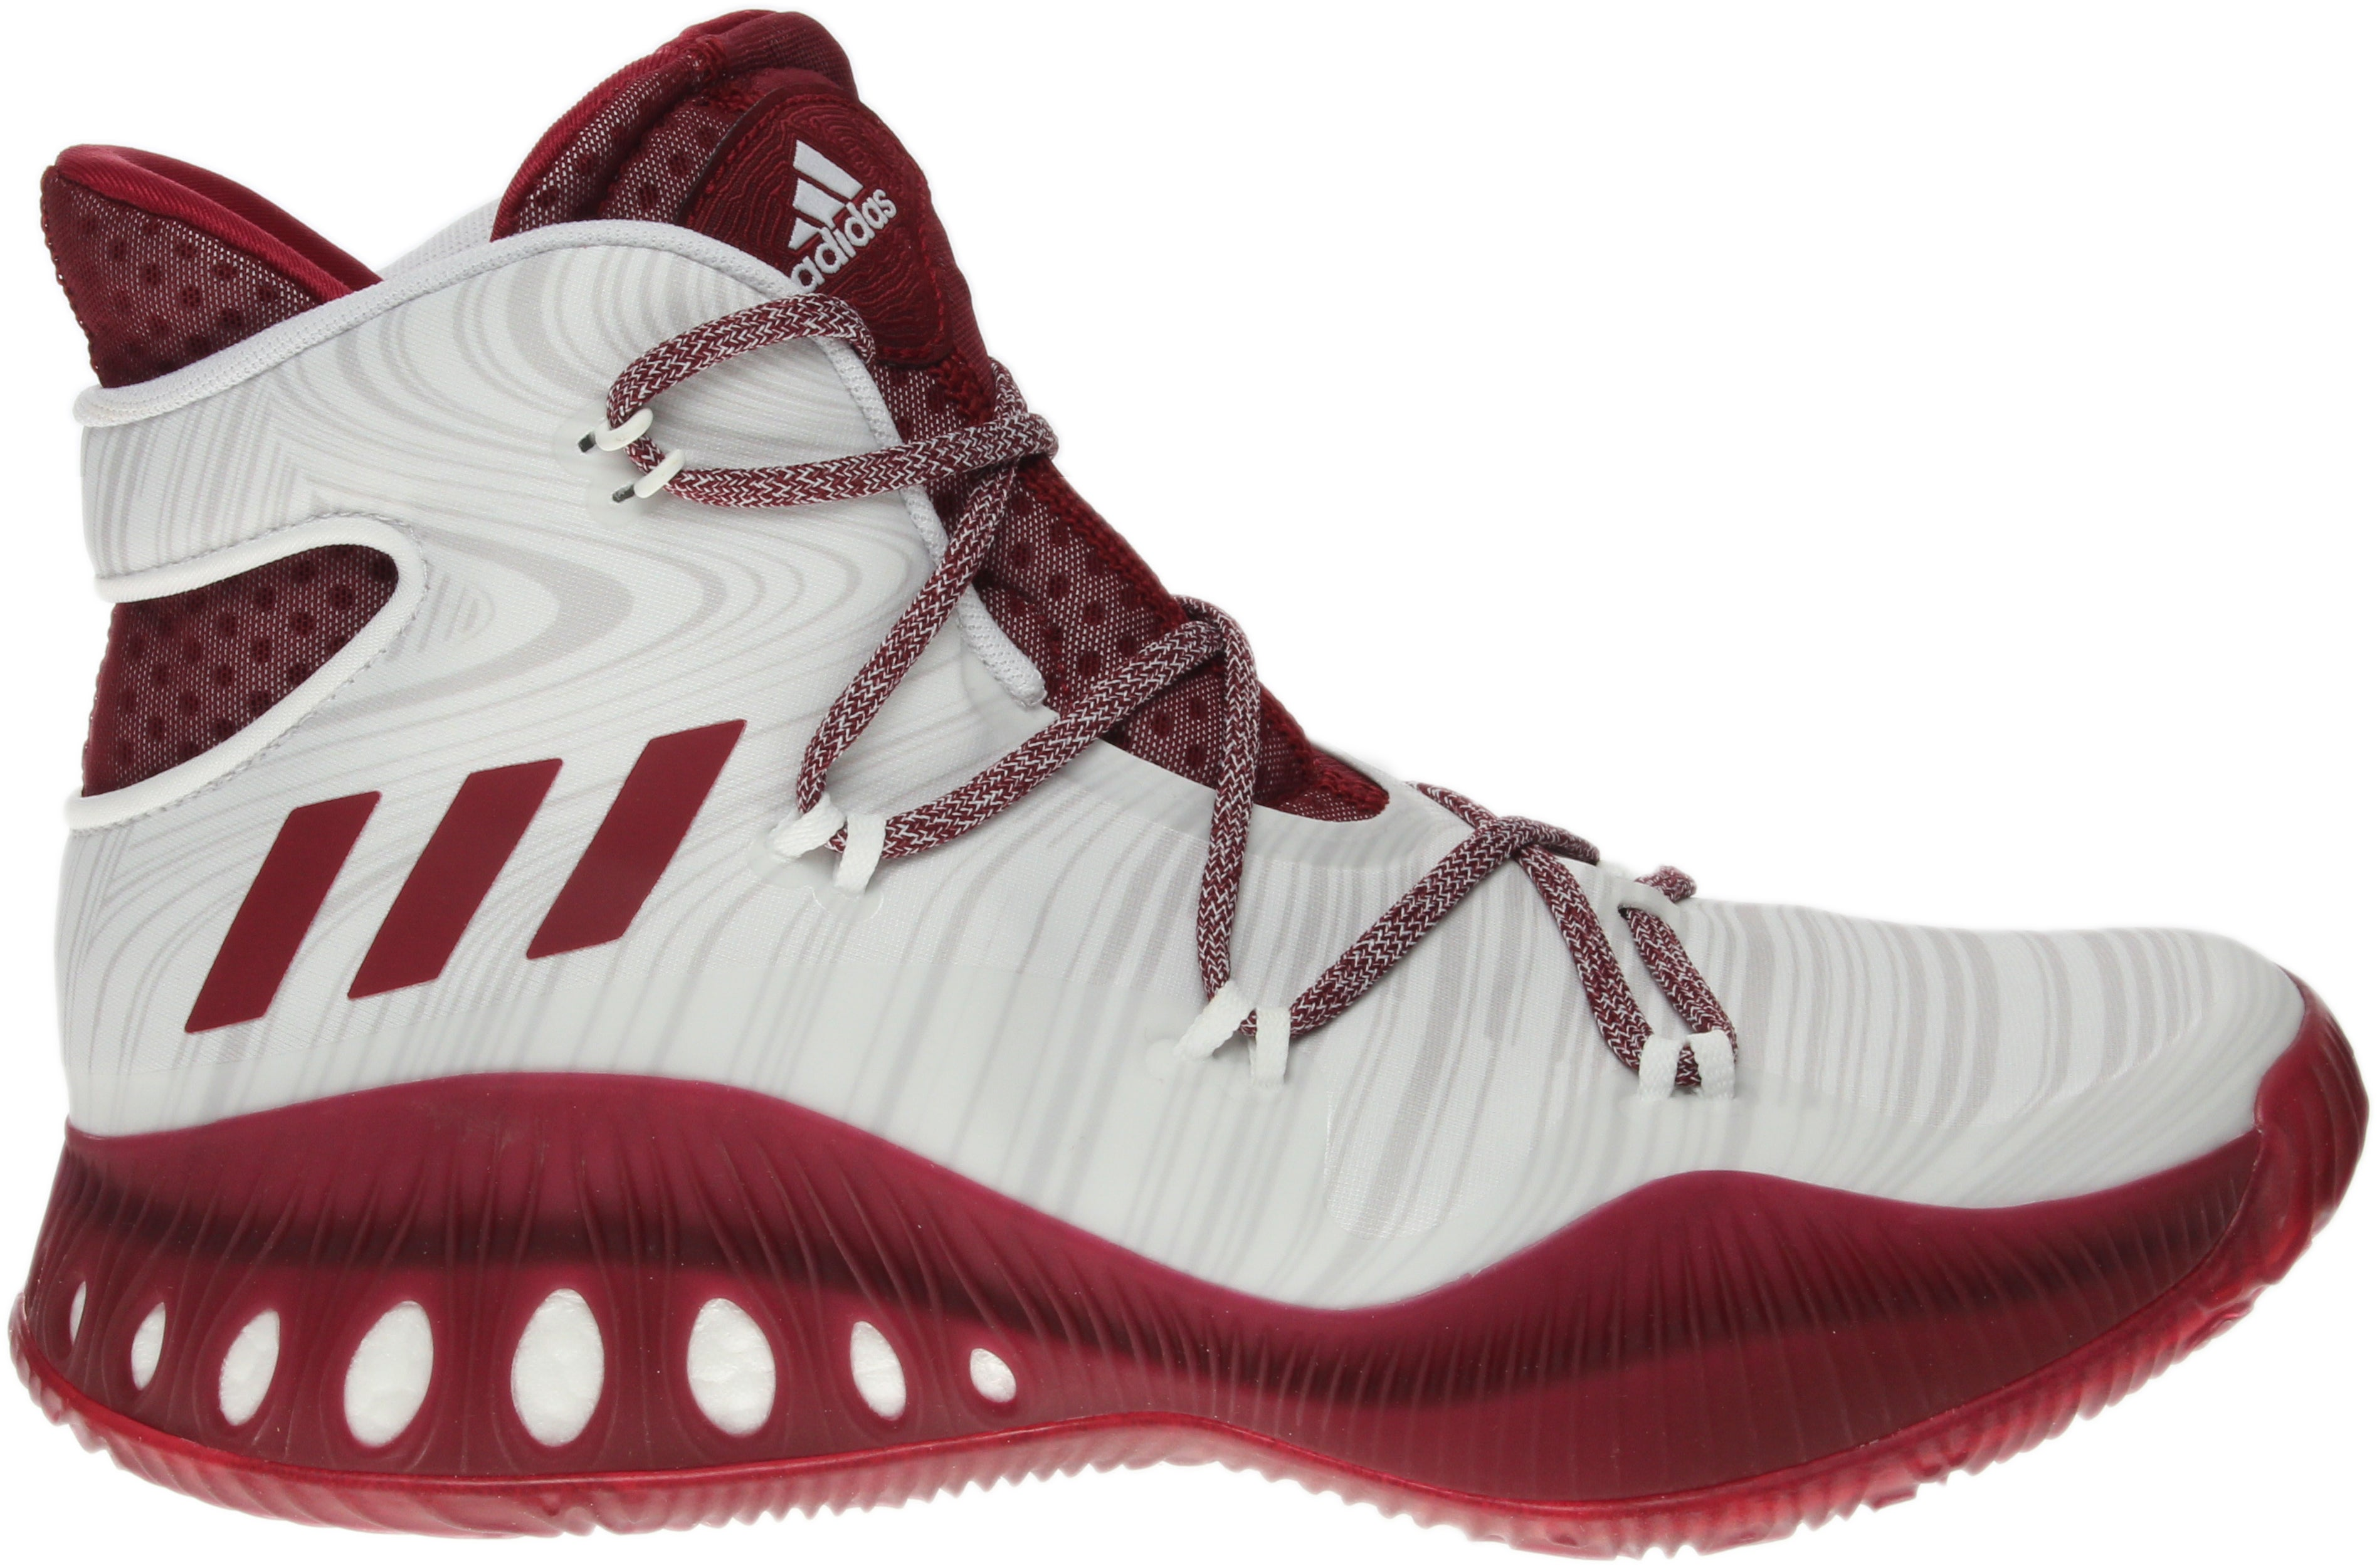 Basketball Shoes That Give You The Most Height